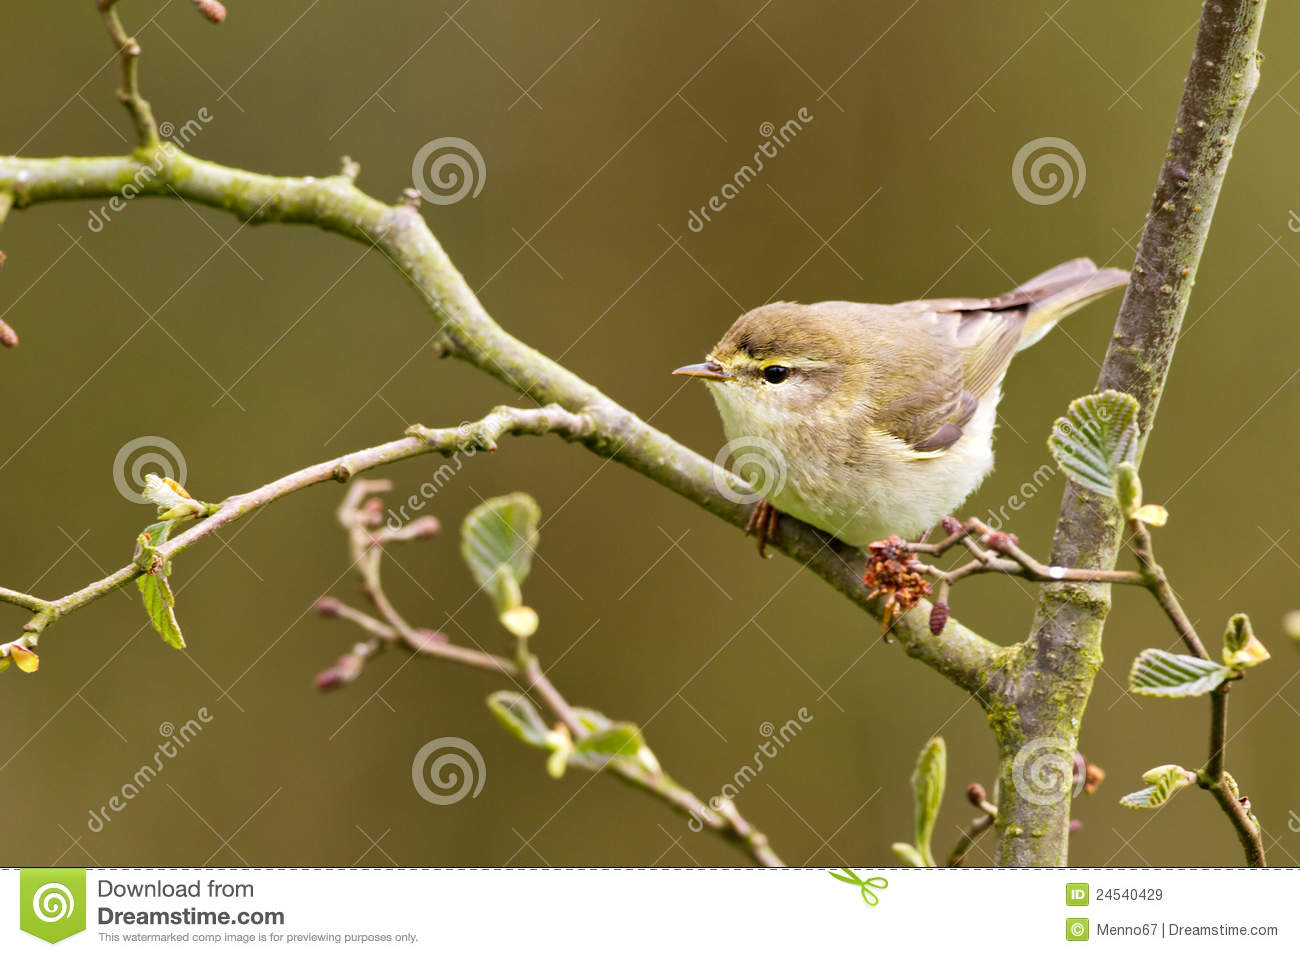 Willow Warbler clipart #8, Download drawings